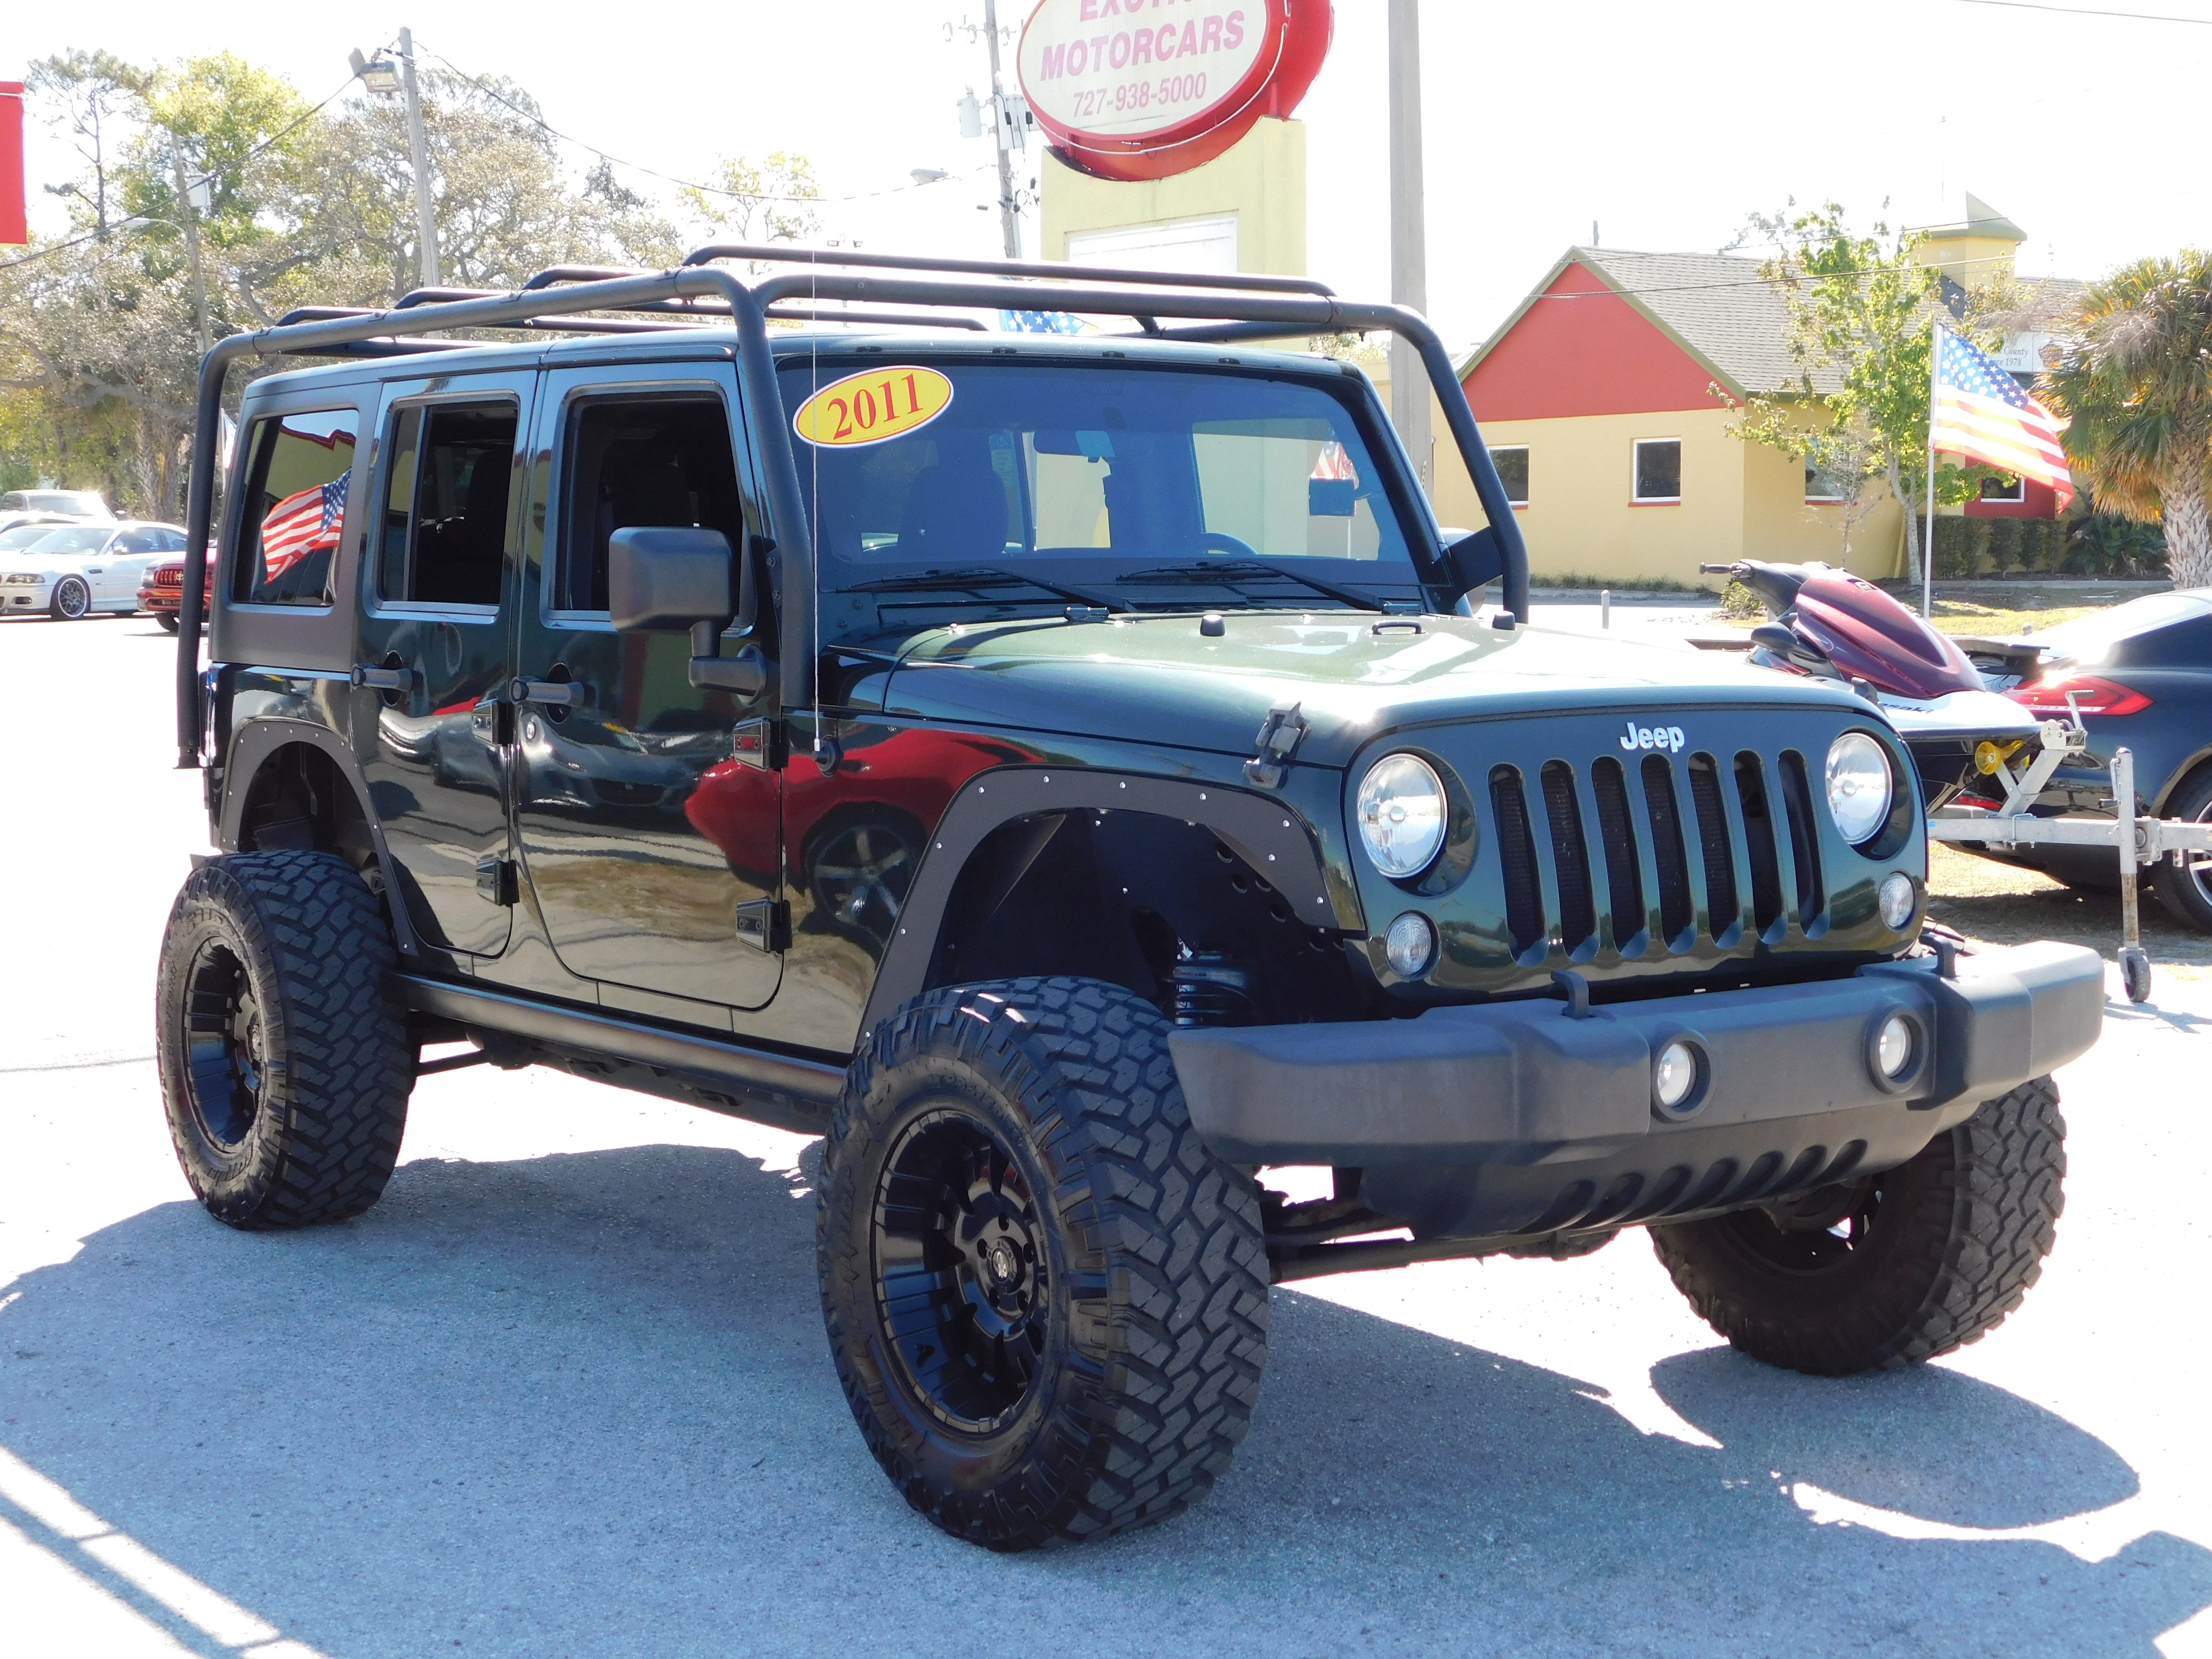 Used 2011 Jeep Wrangler Unlimited For Sale